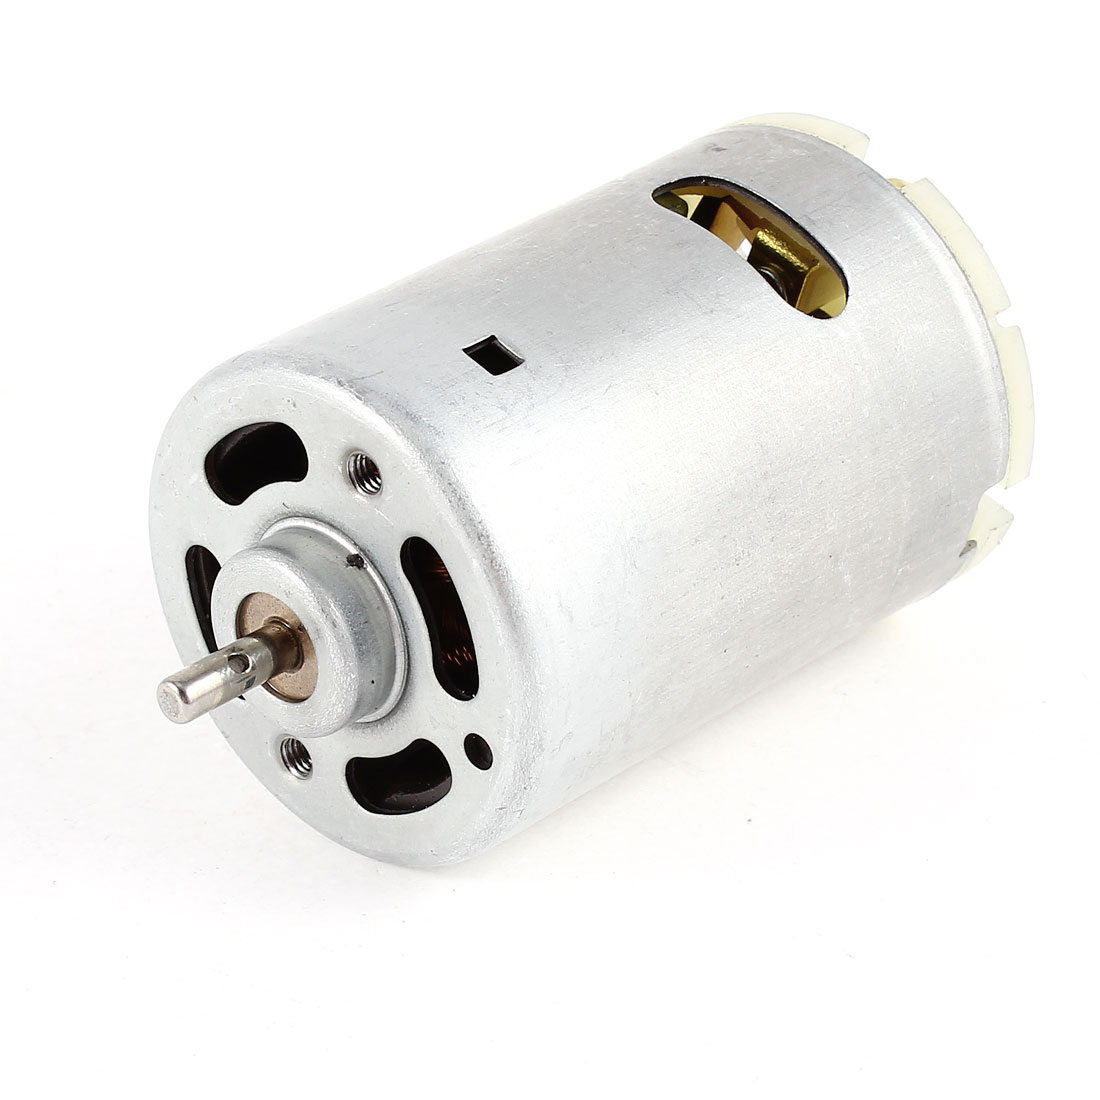 DC 6-24V 37000RPM Electric Mini Motor 50x35mm for RC Boat Model Toys DIY